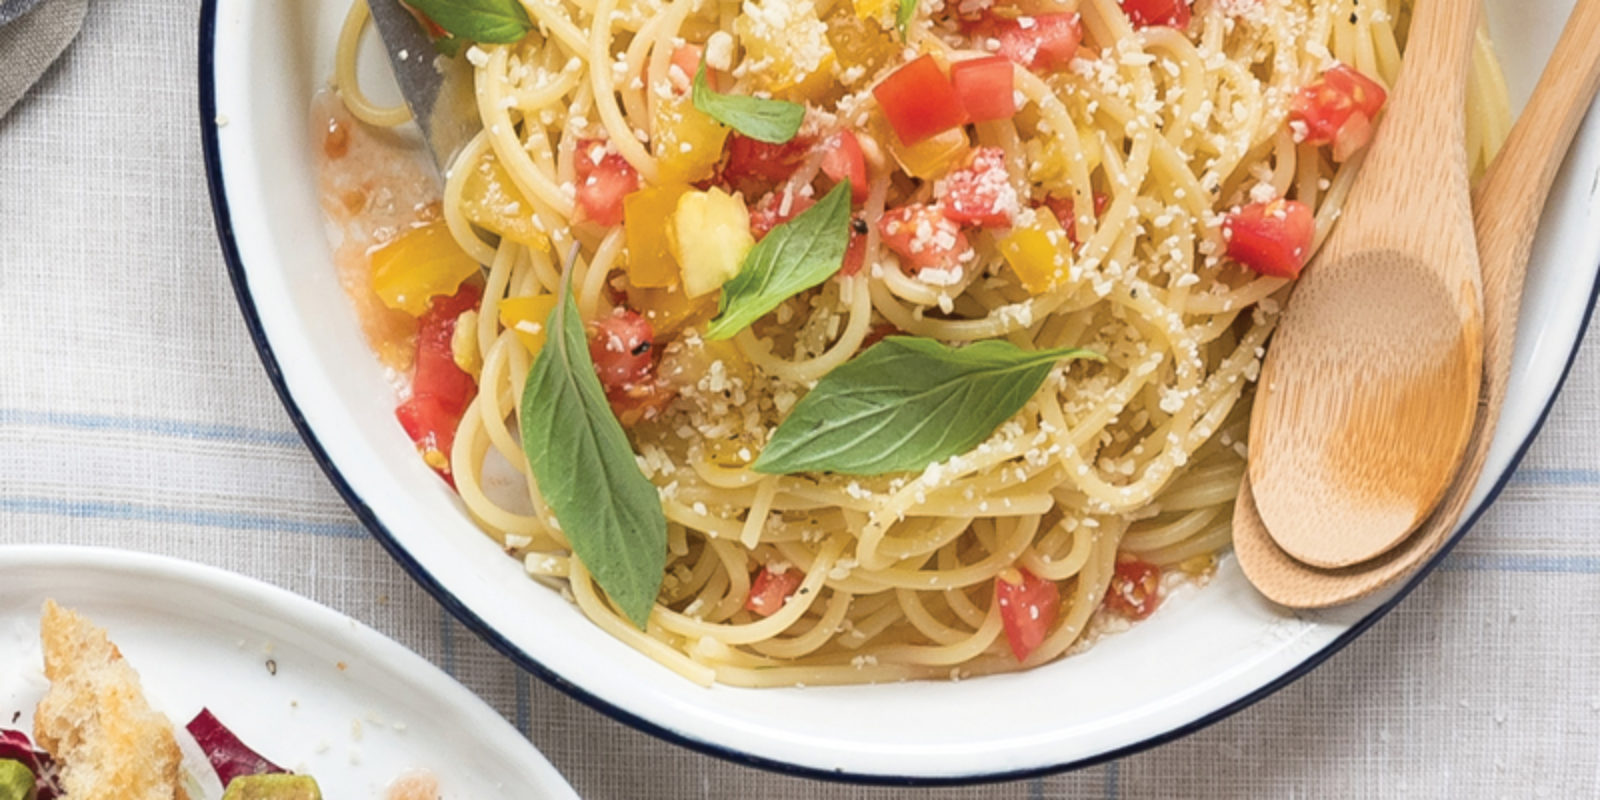 Spaghetti with No-Cook Tomato Sauce